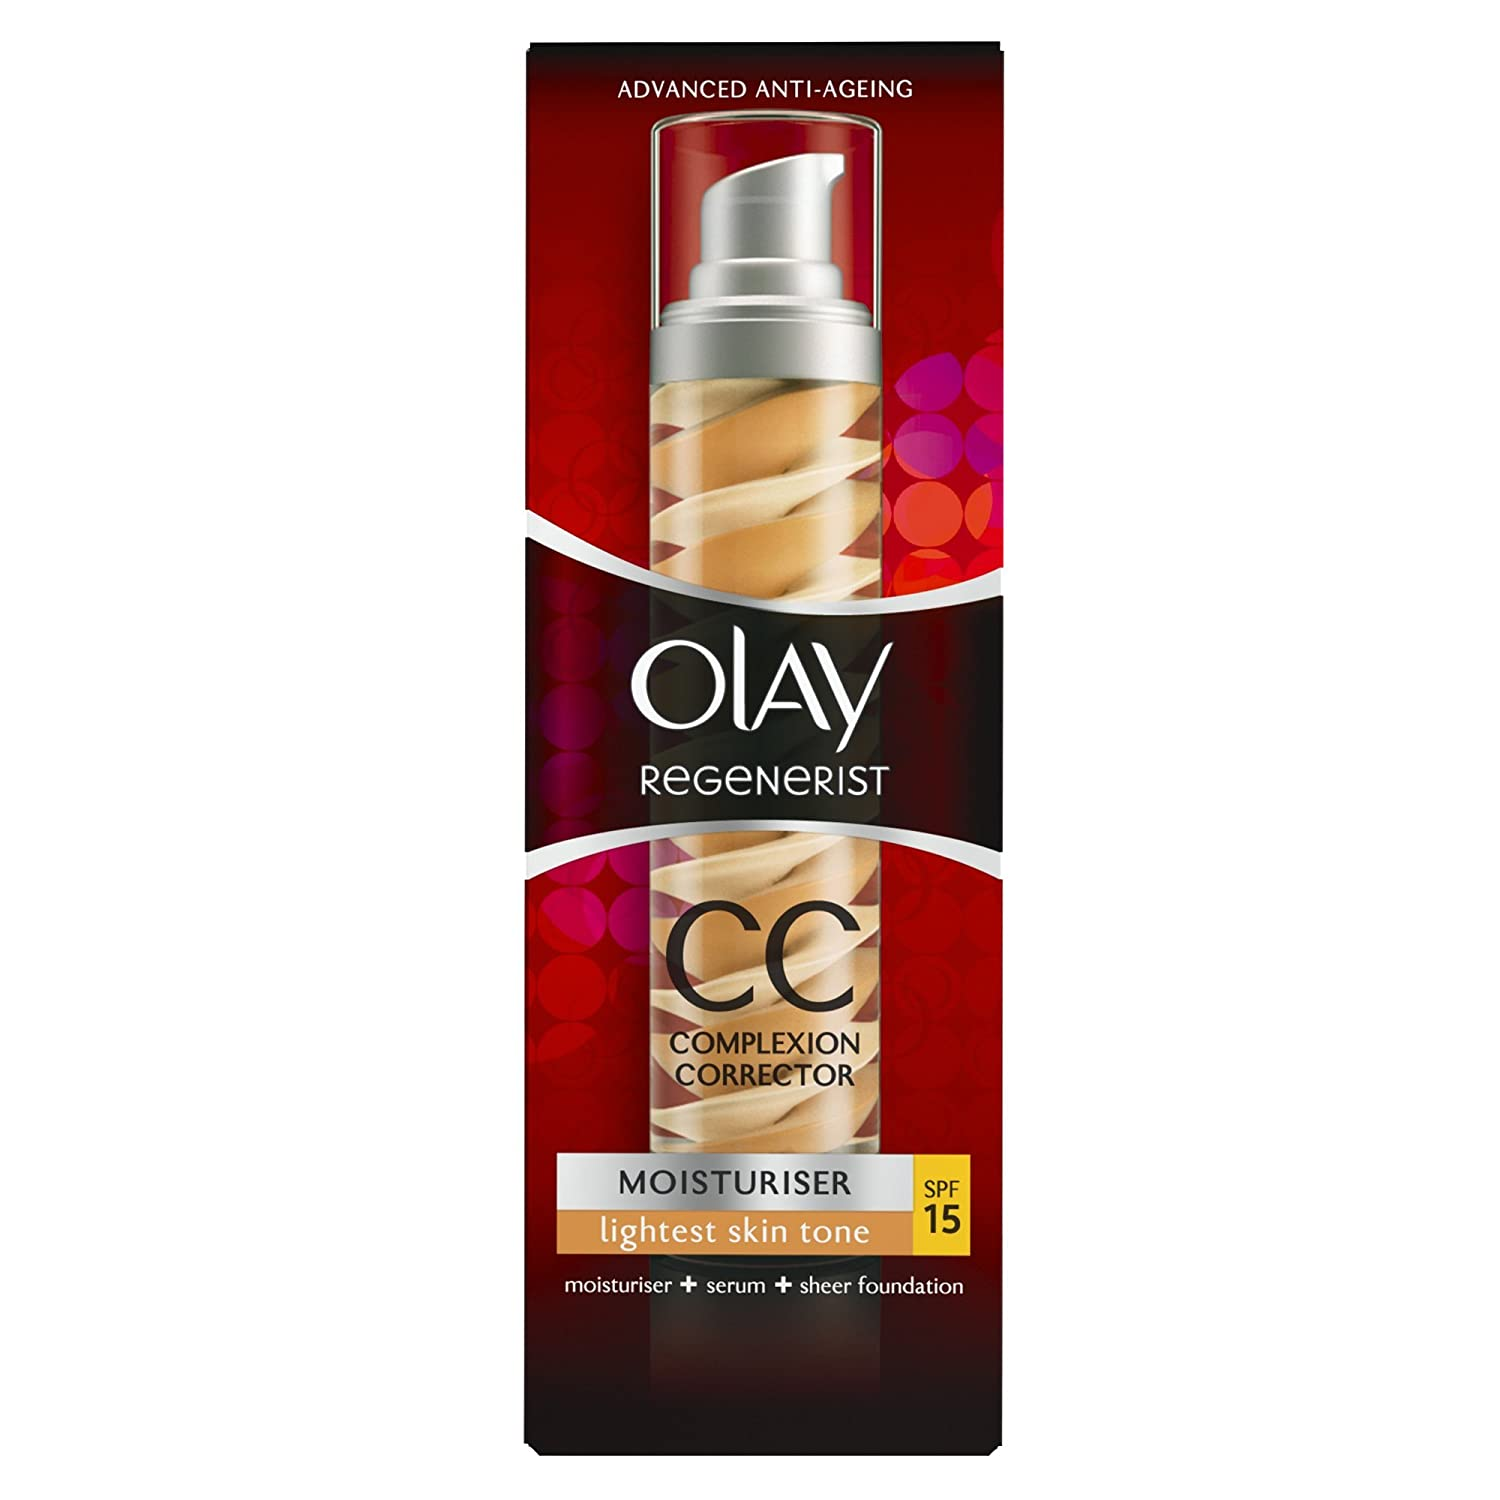 Olay Regenerist CC Cream - Lightest Skin Tone Globalbeauty